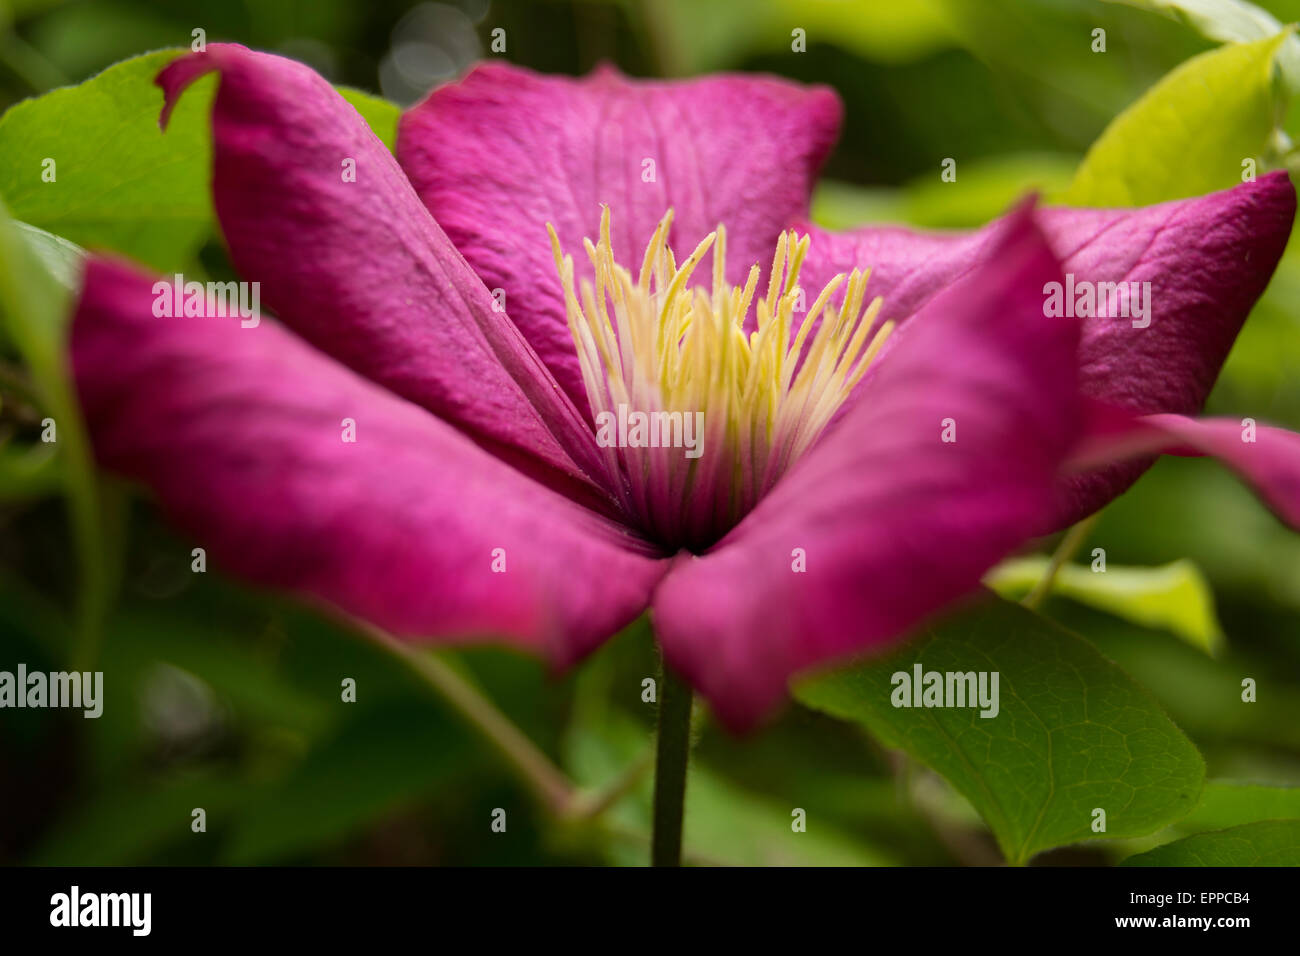 magenta flower with blurred green background - Stock Image